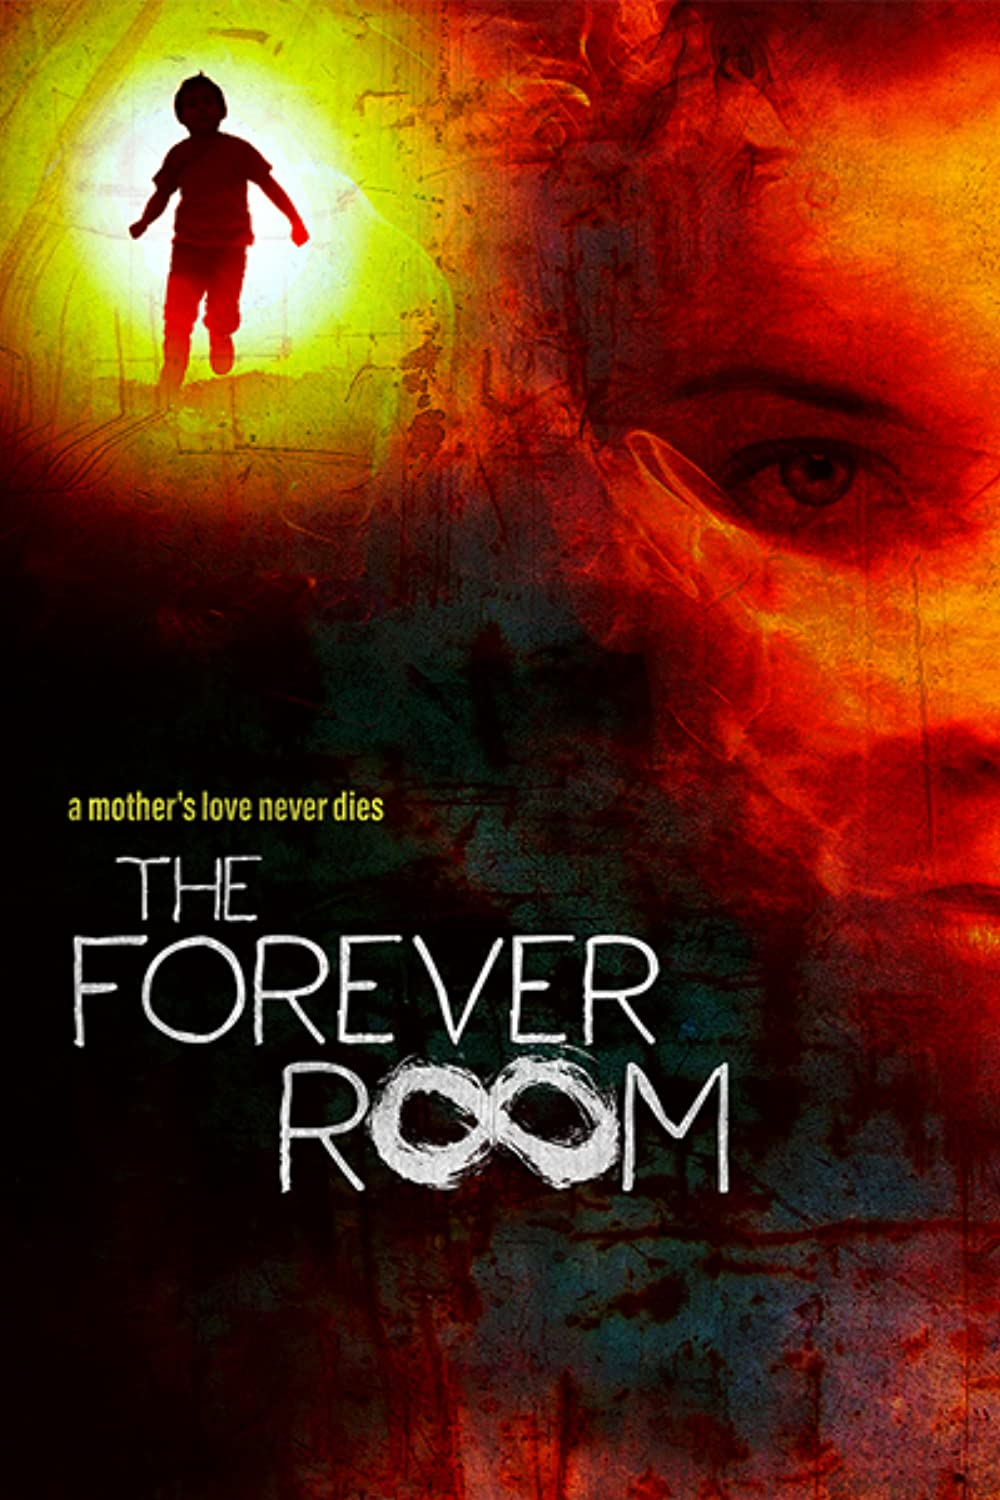 The Forever Room (2021) Full Movie [In English] With Hindi Subtitles | WebRip 720p [1XBET]